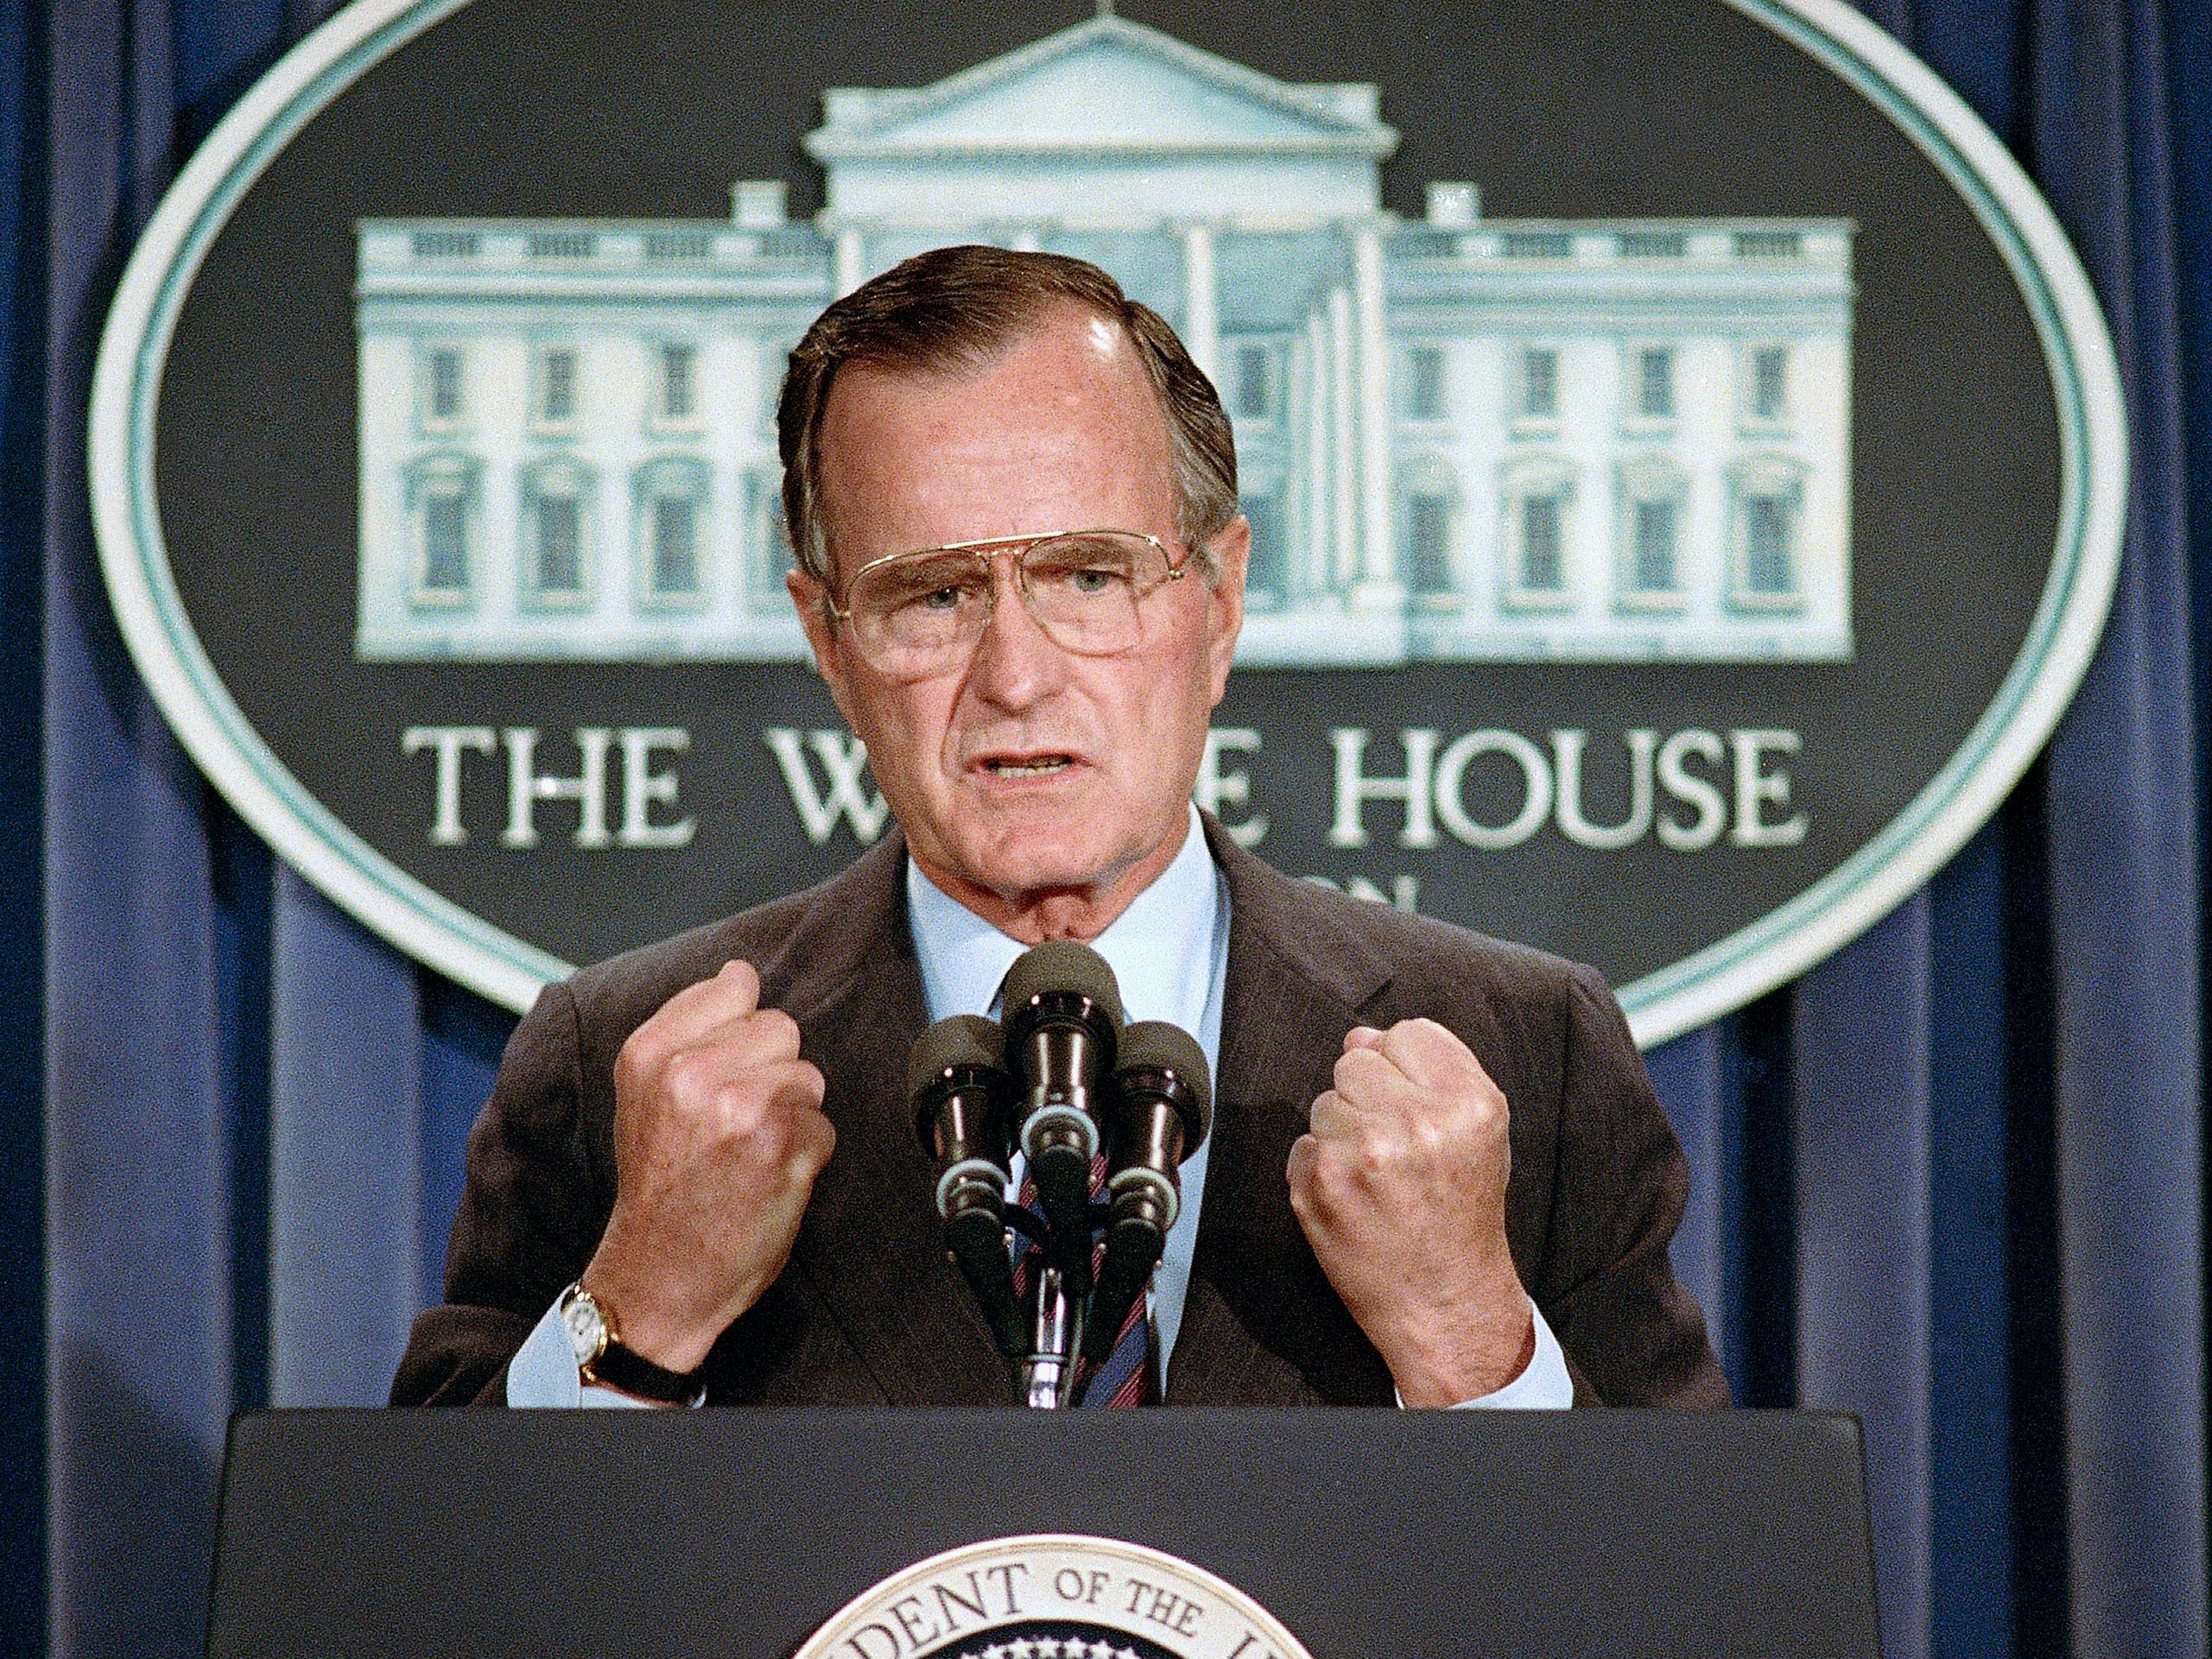 Seen on  June 5, 1989, U.S. President George H.W. Bush holds a news conference at the White House where he condemned the Chinese crackdown on pro-democracy demonstrators in Beijing's Tiananmen Square.